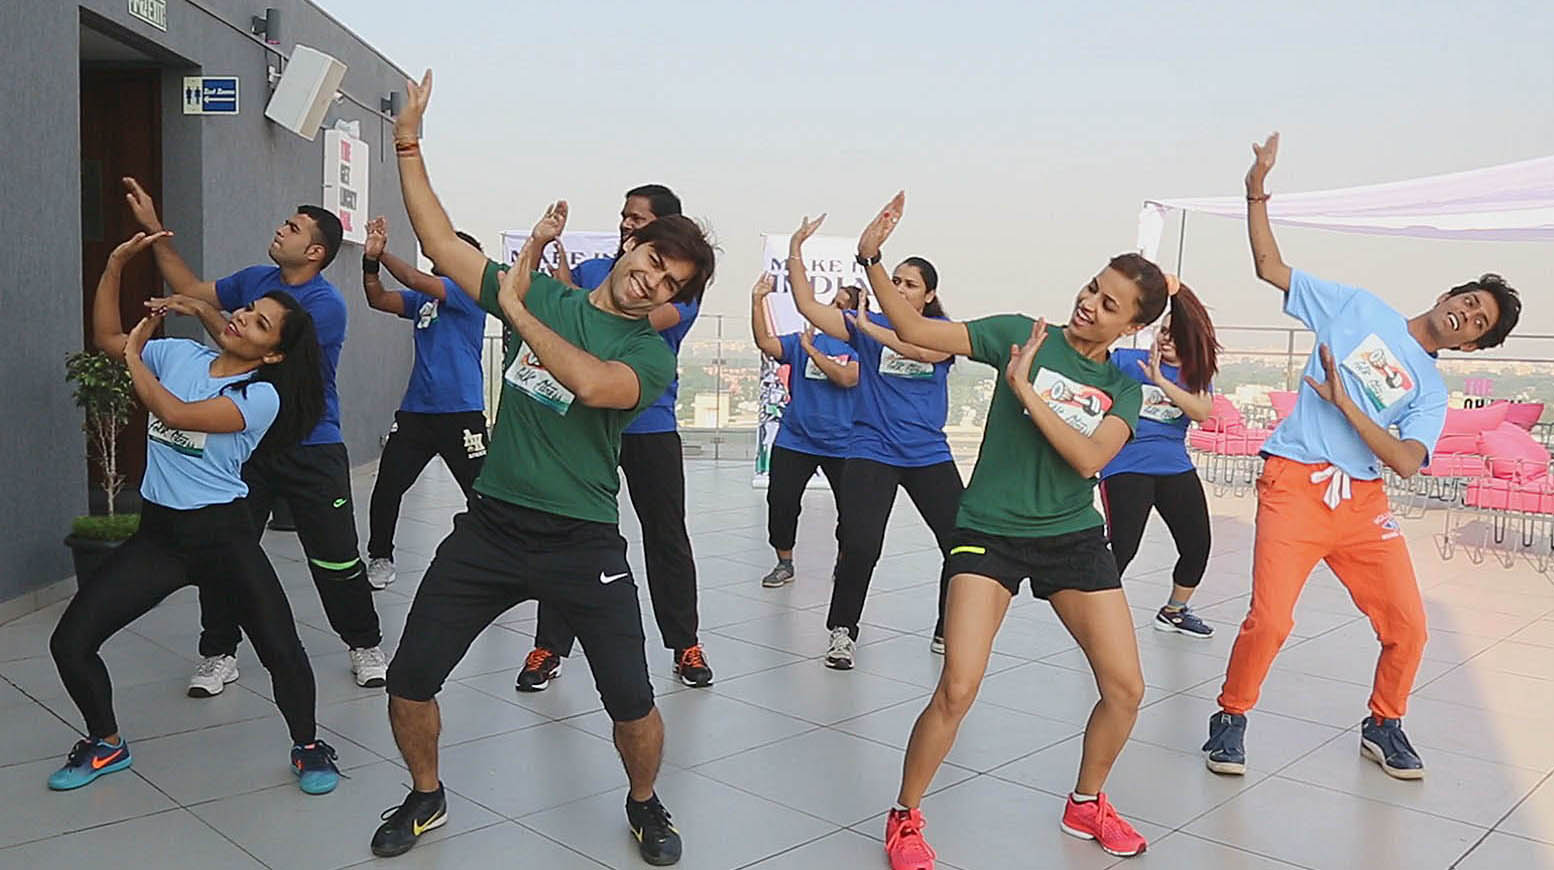 Folk Fitness to create 1.2 lakh instructors pan-India in next 5 years